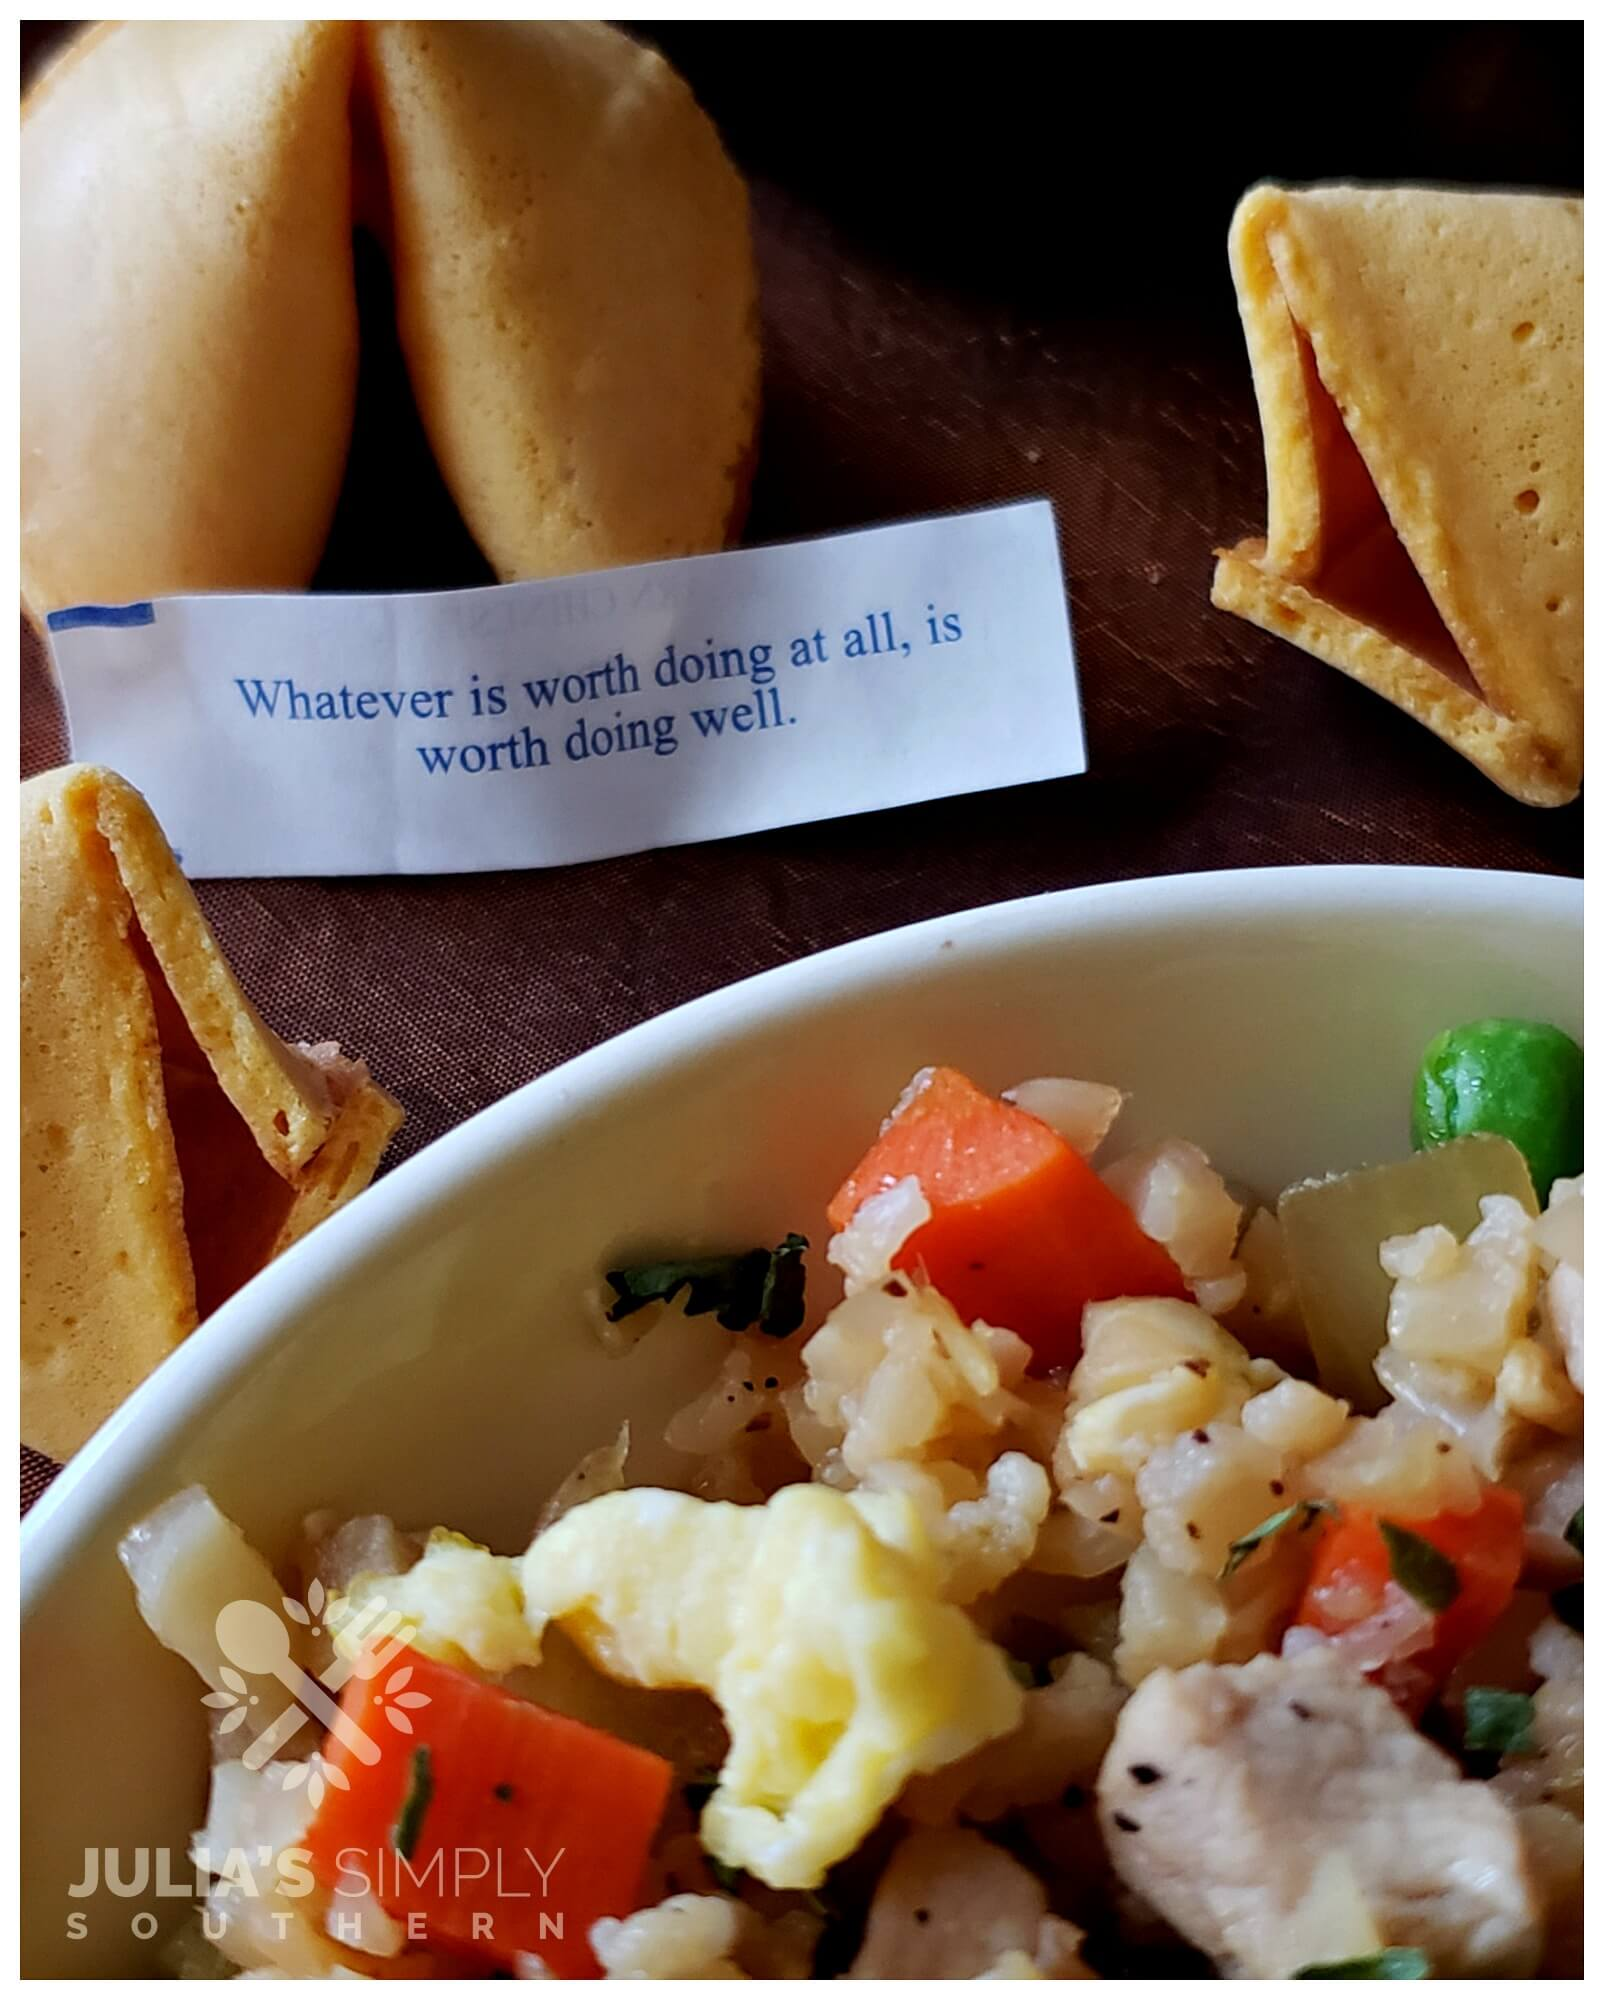 Great fortune cookie quotes